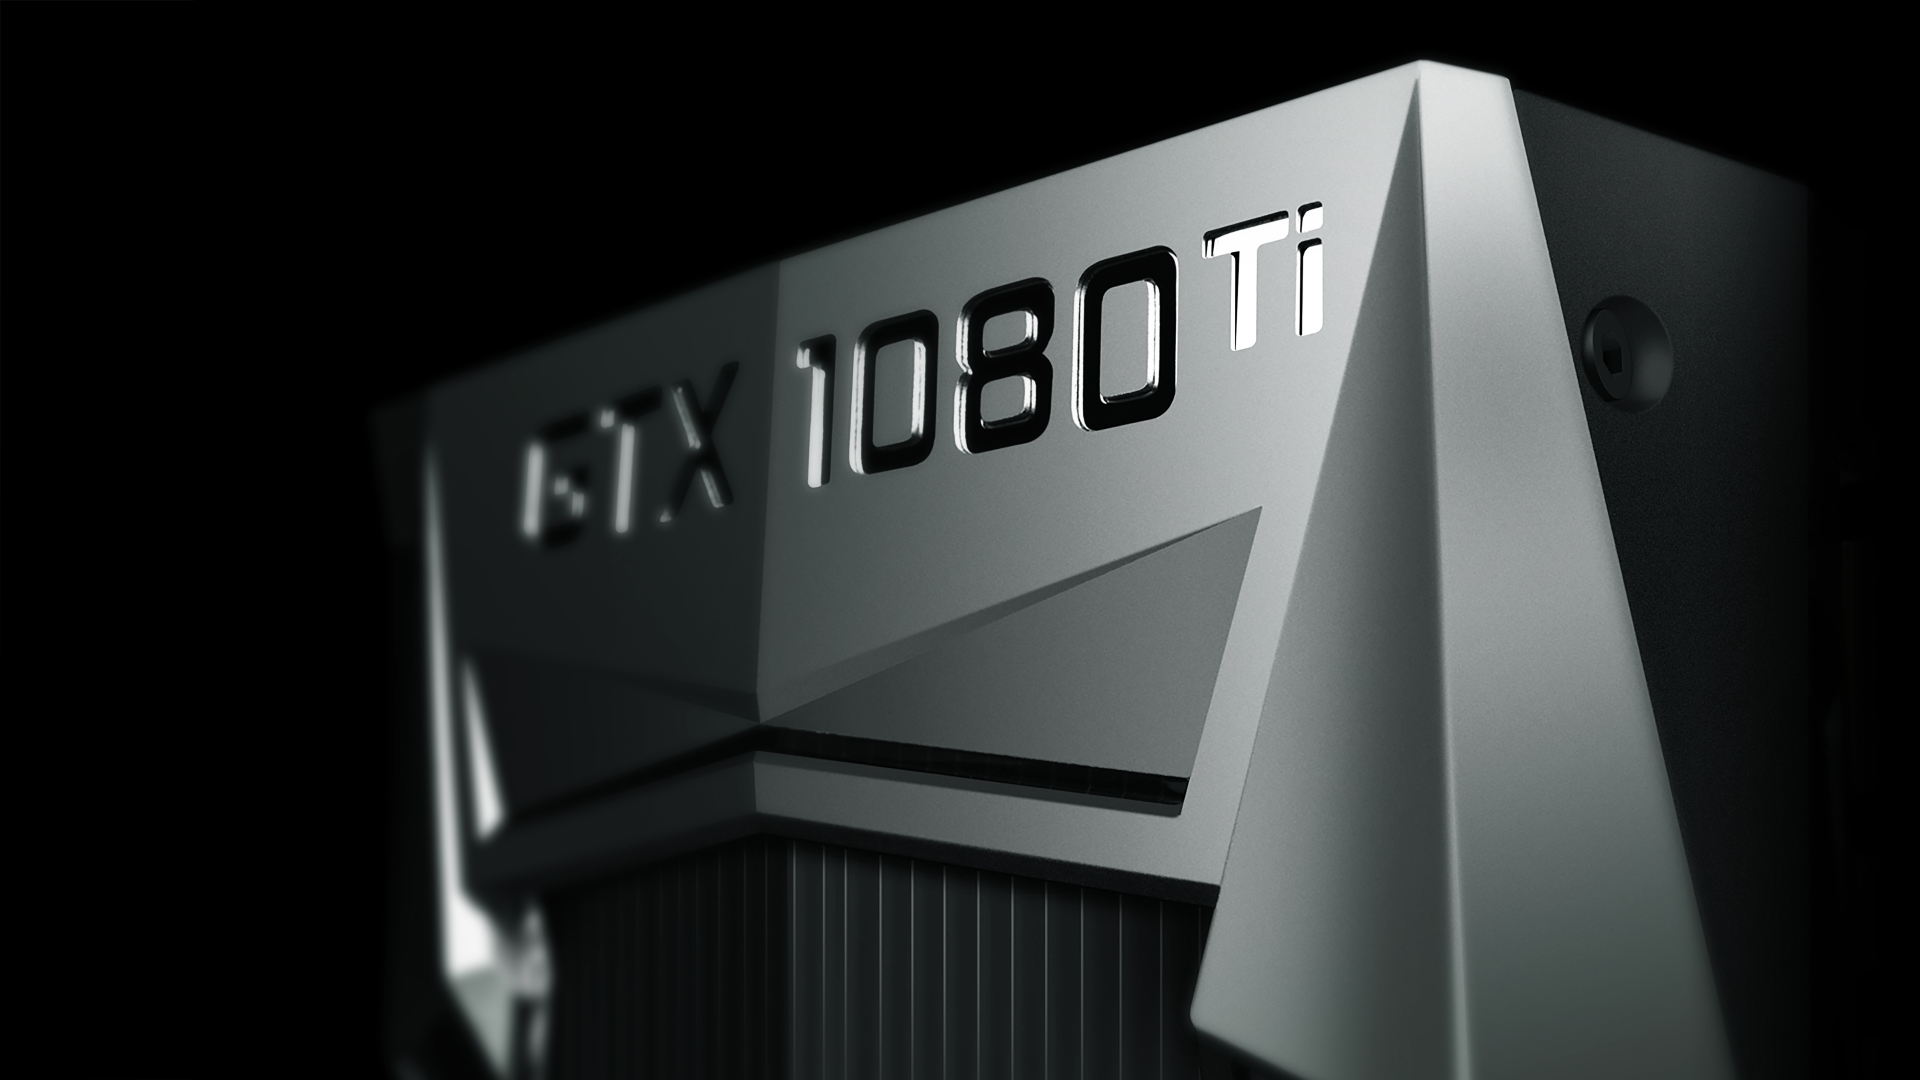 Nvidia's GTX 1080 Ti could be the next GPU returning to market